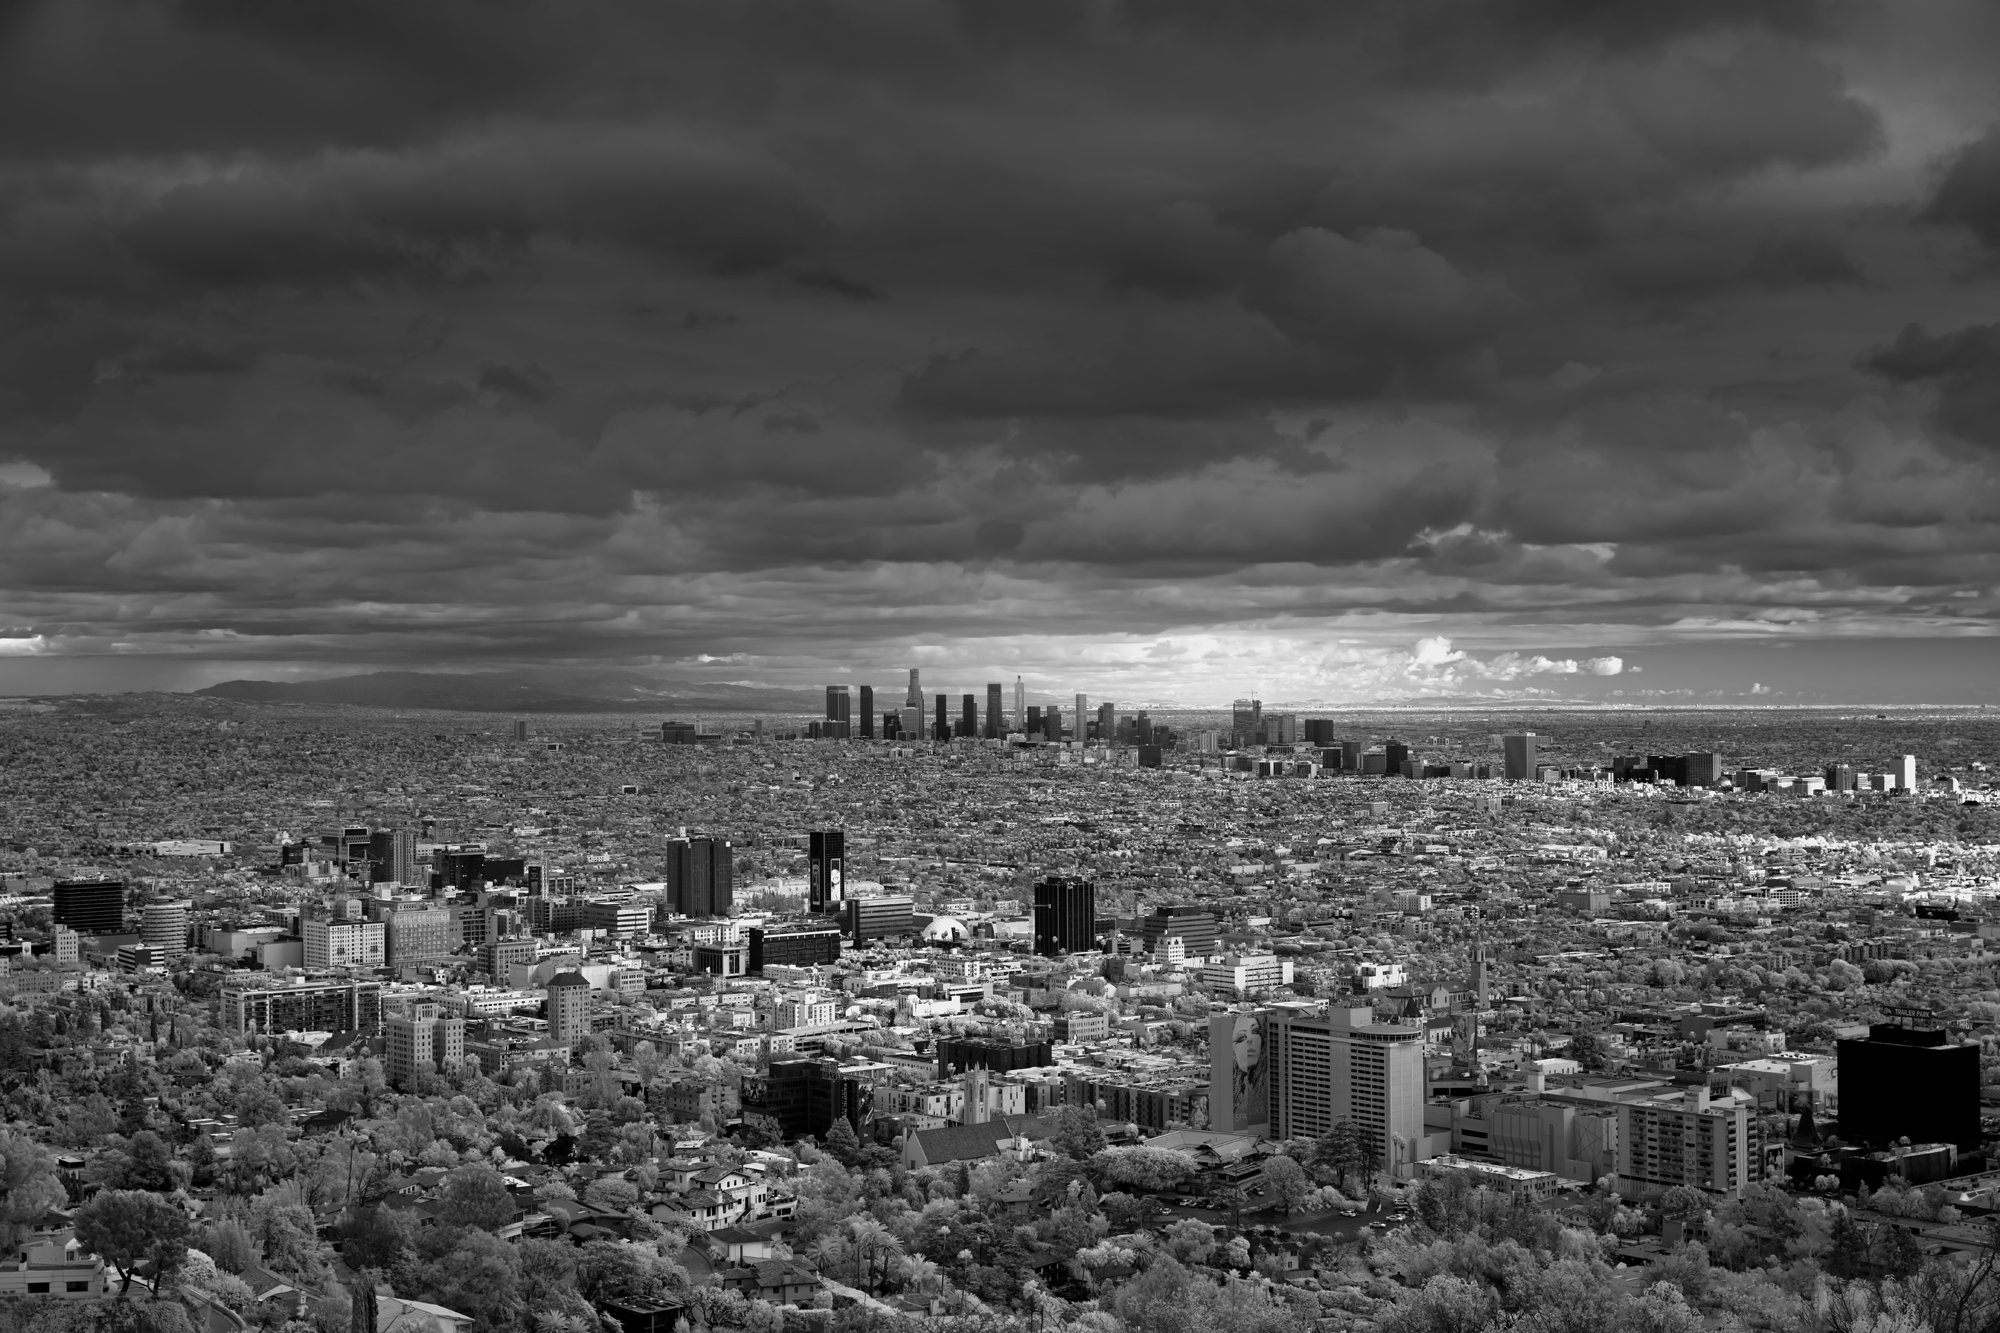 Urbane, Mitch Dobrowner, Catherine Couturier Gallery